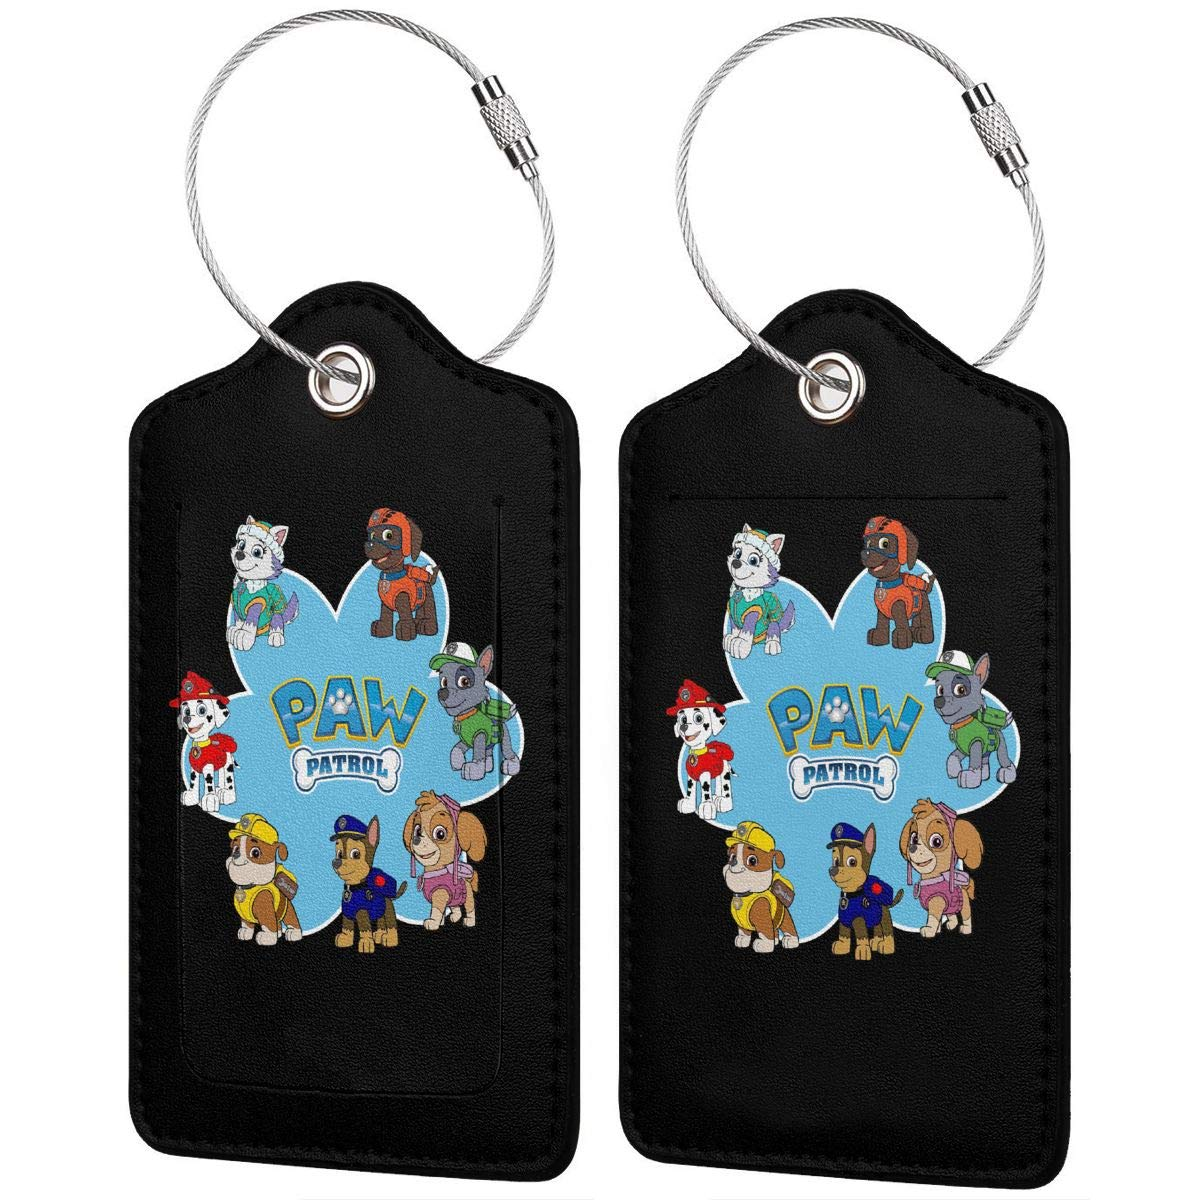 Paw Patrol Leather Luggage Tag Travel ID Label For Baggage Suitcase